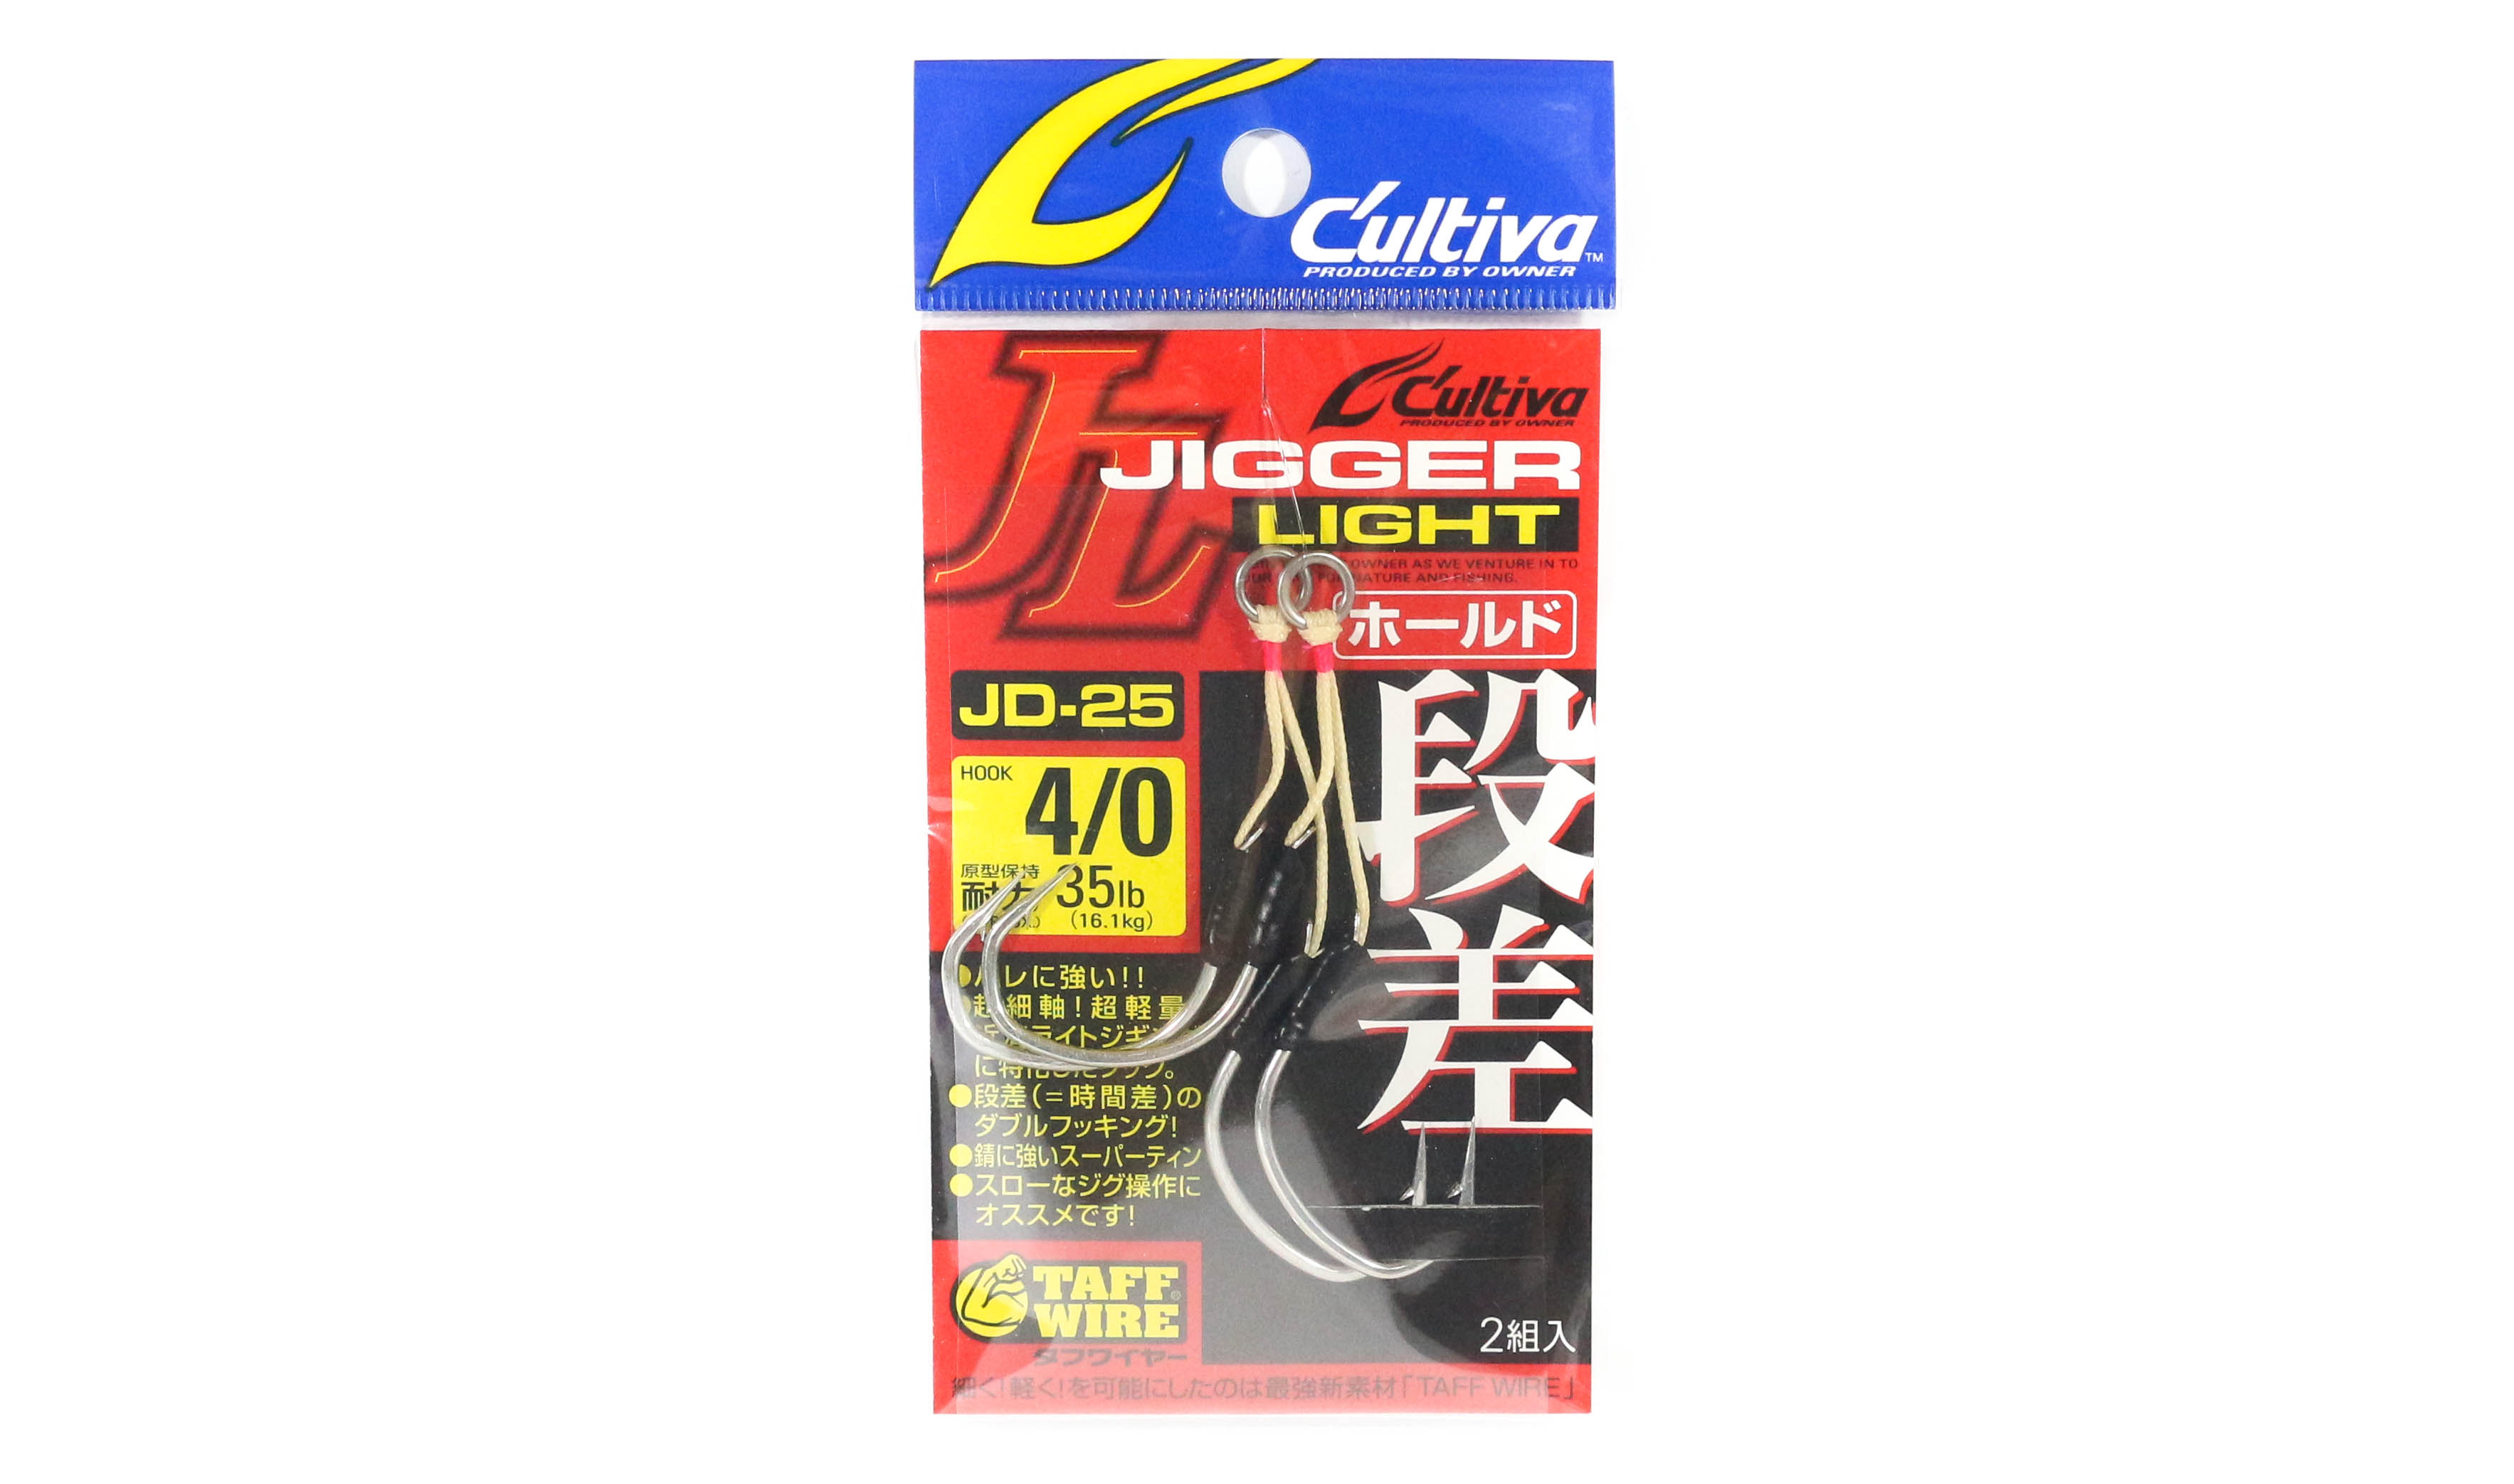 Owner JD-25 Jigger Light Hold Twin Assist Hooks Size 4/0 (8931)